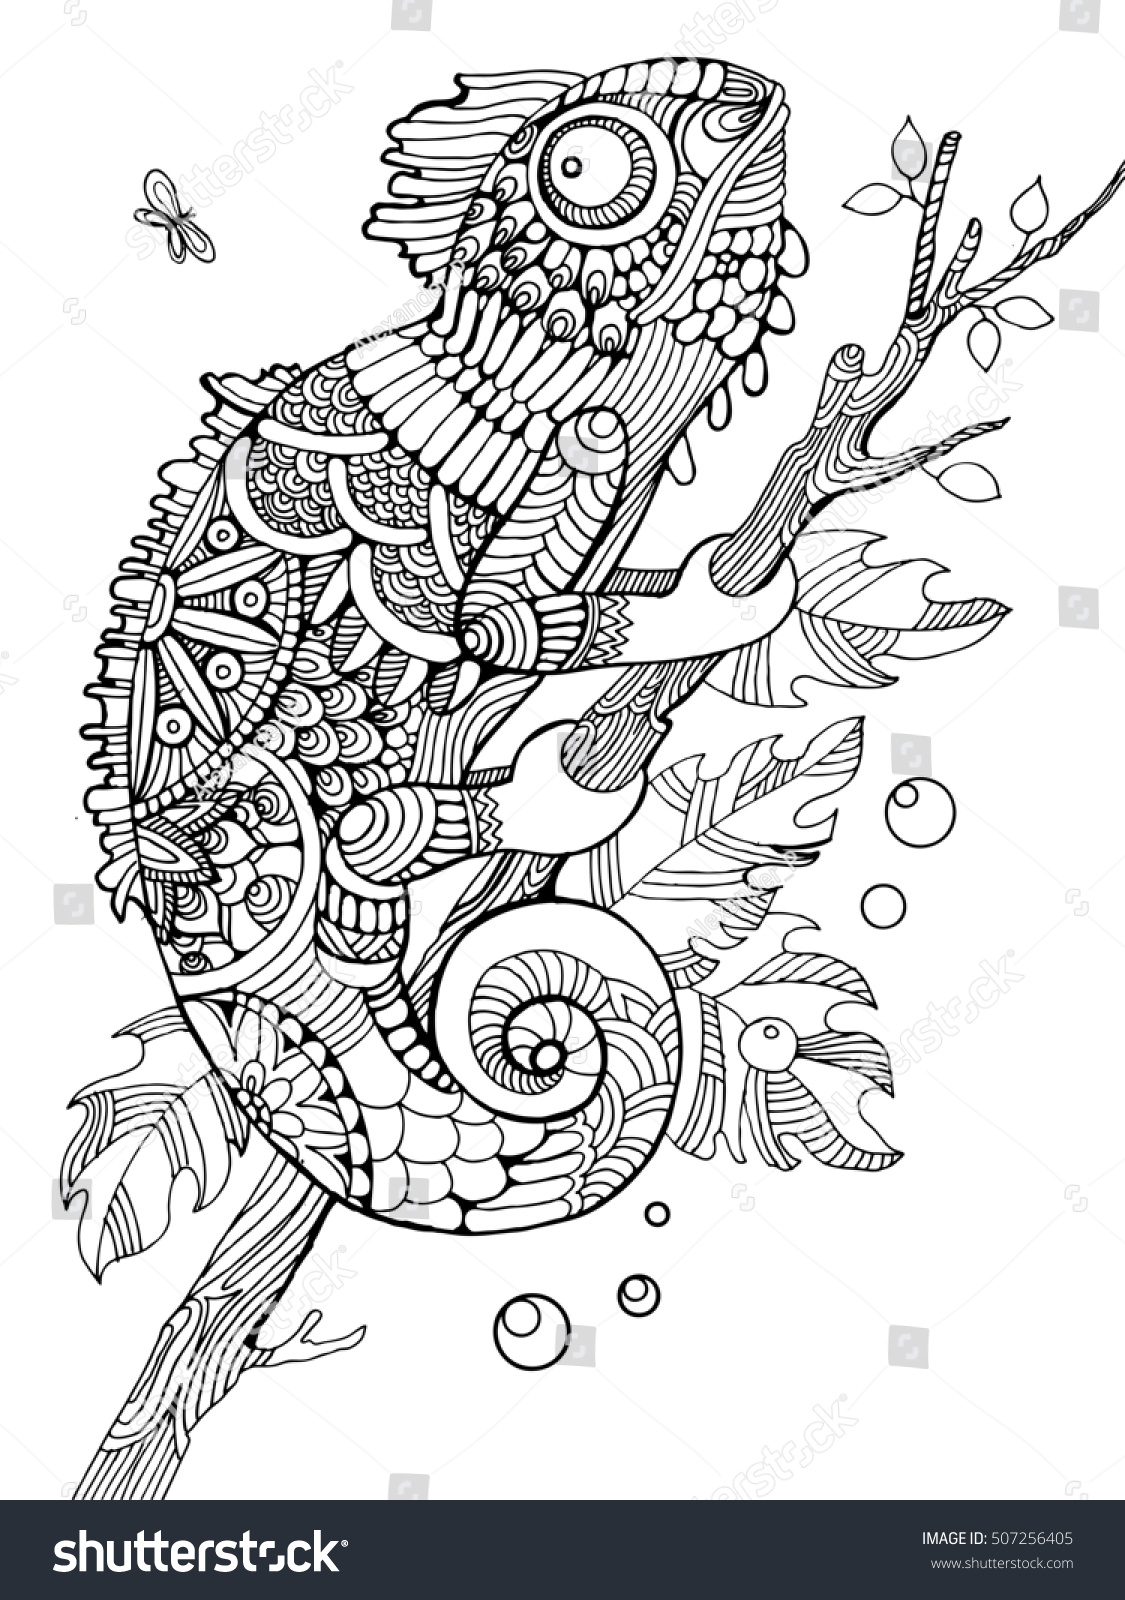 Anti stress colouring book asda - Chameleon Coloring Book For Adults Raster Illustration Anti Stress Coloring For Adult Tattoo